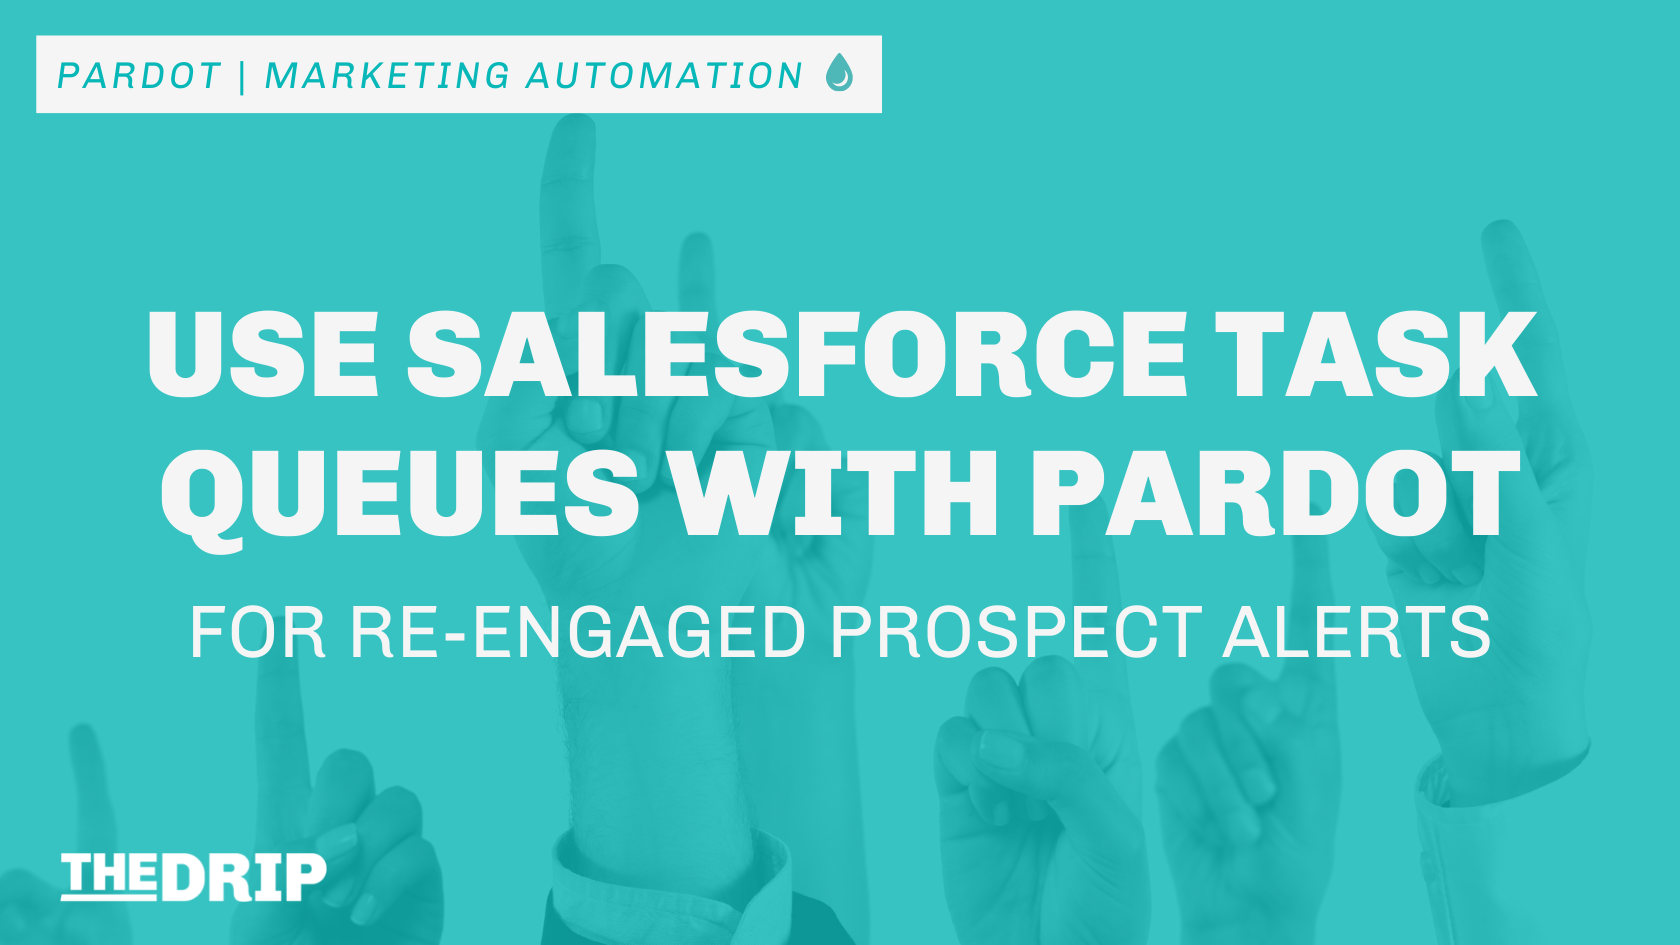 Use Salesforce Task Queues with Pardot (for Re-engaged Prospect Alerts)